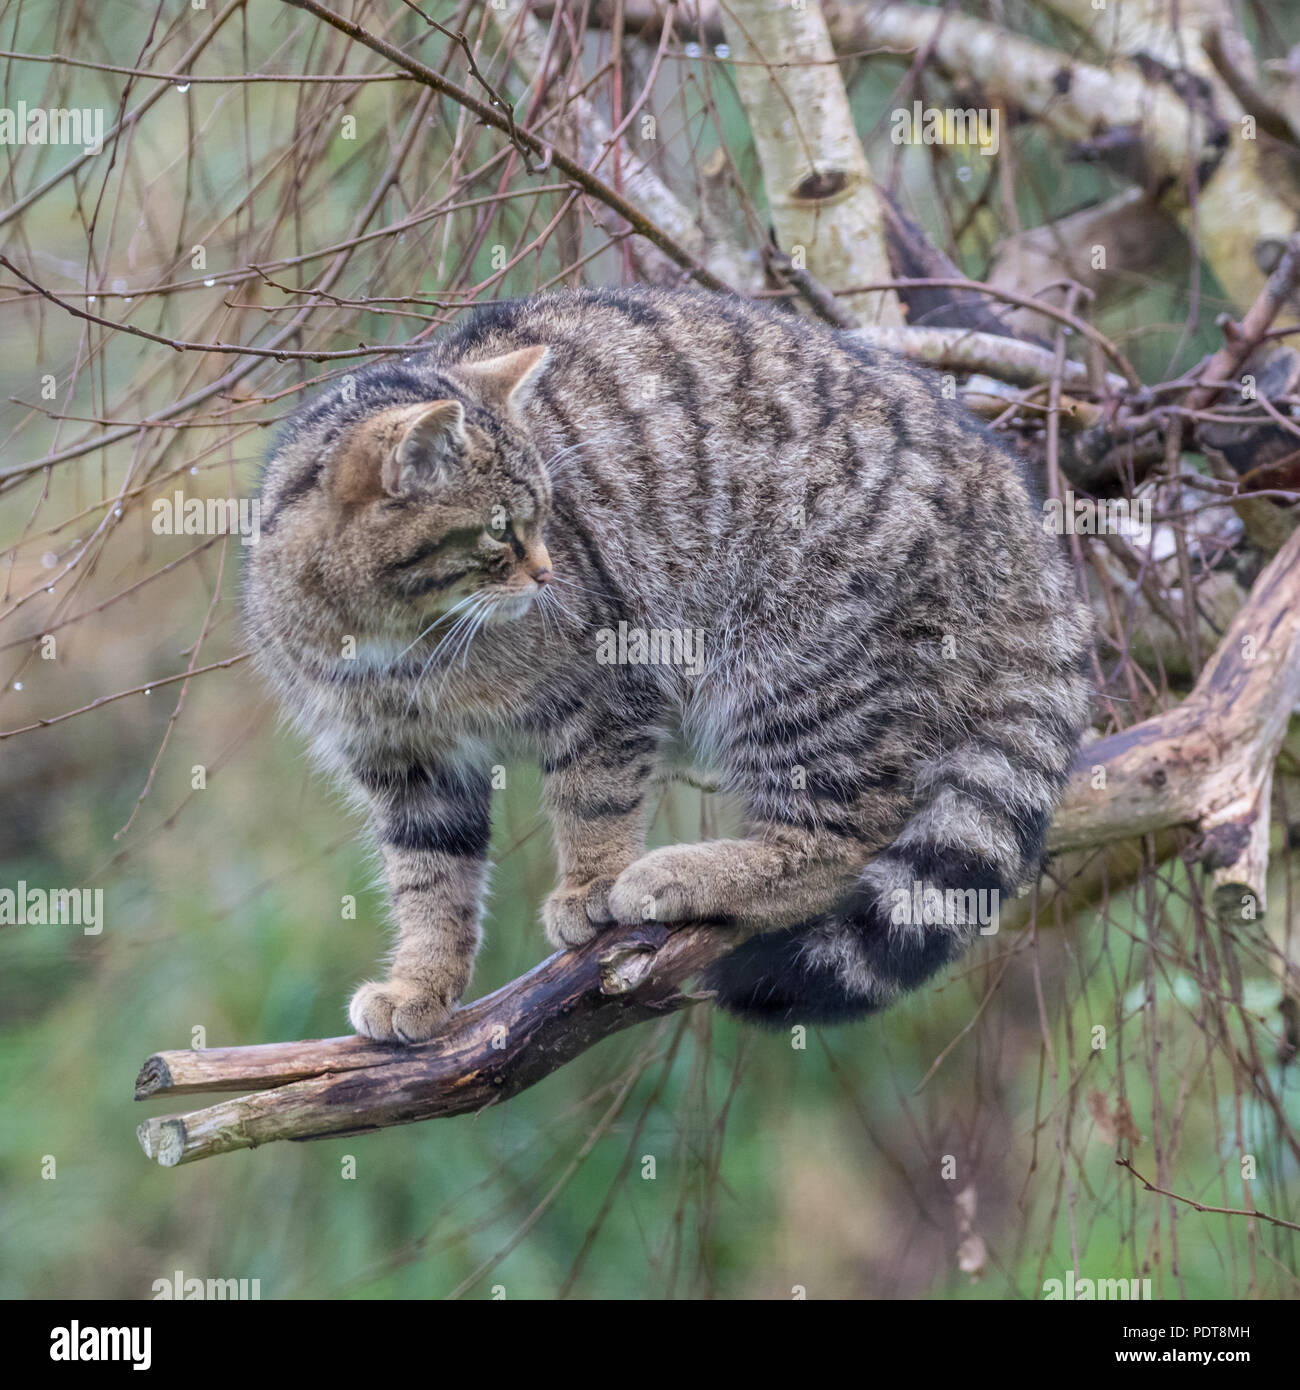 Scottish gato montés (Felis silvestris) o grampia Highland tiger Foto de stock